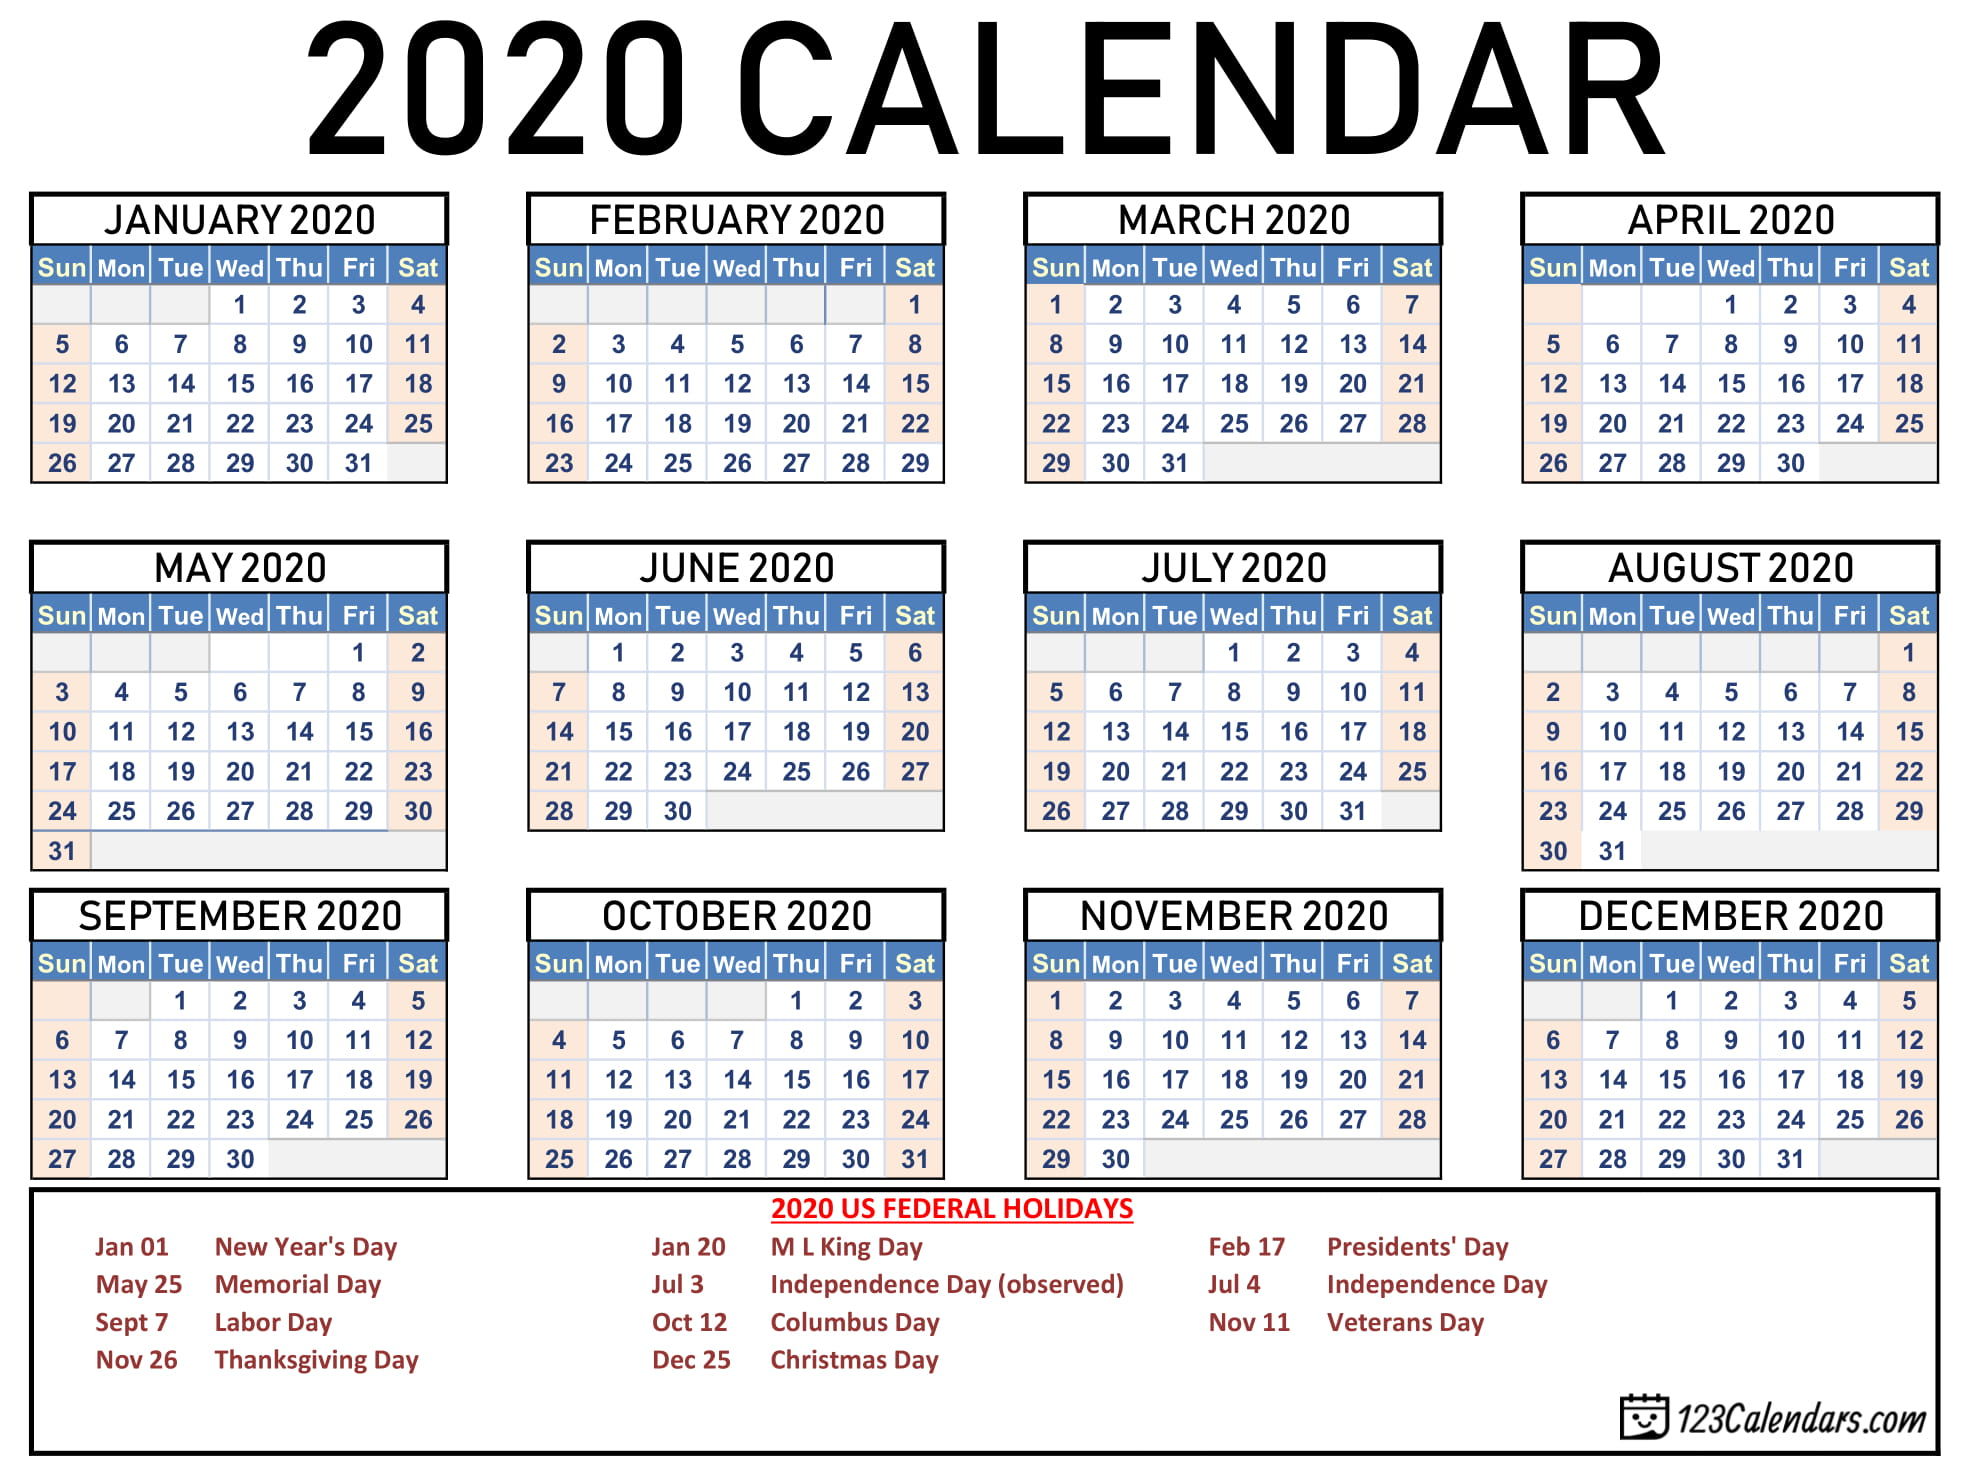 photograph regarding Free Printable 2020 Calendar With Holidays titled Free of charge Printable 2020 Calendar